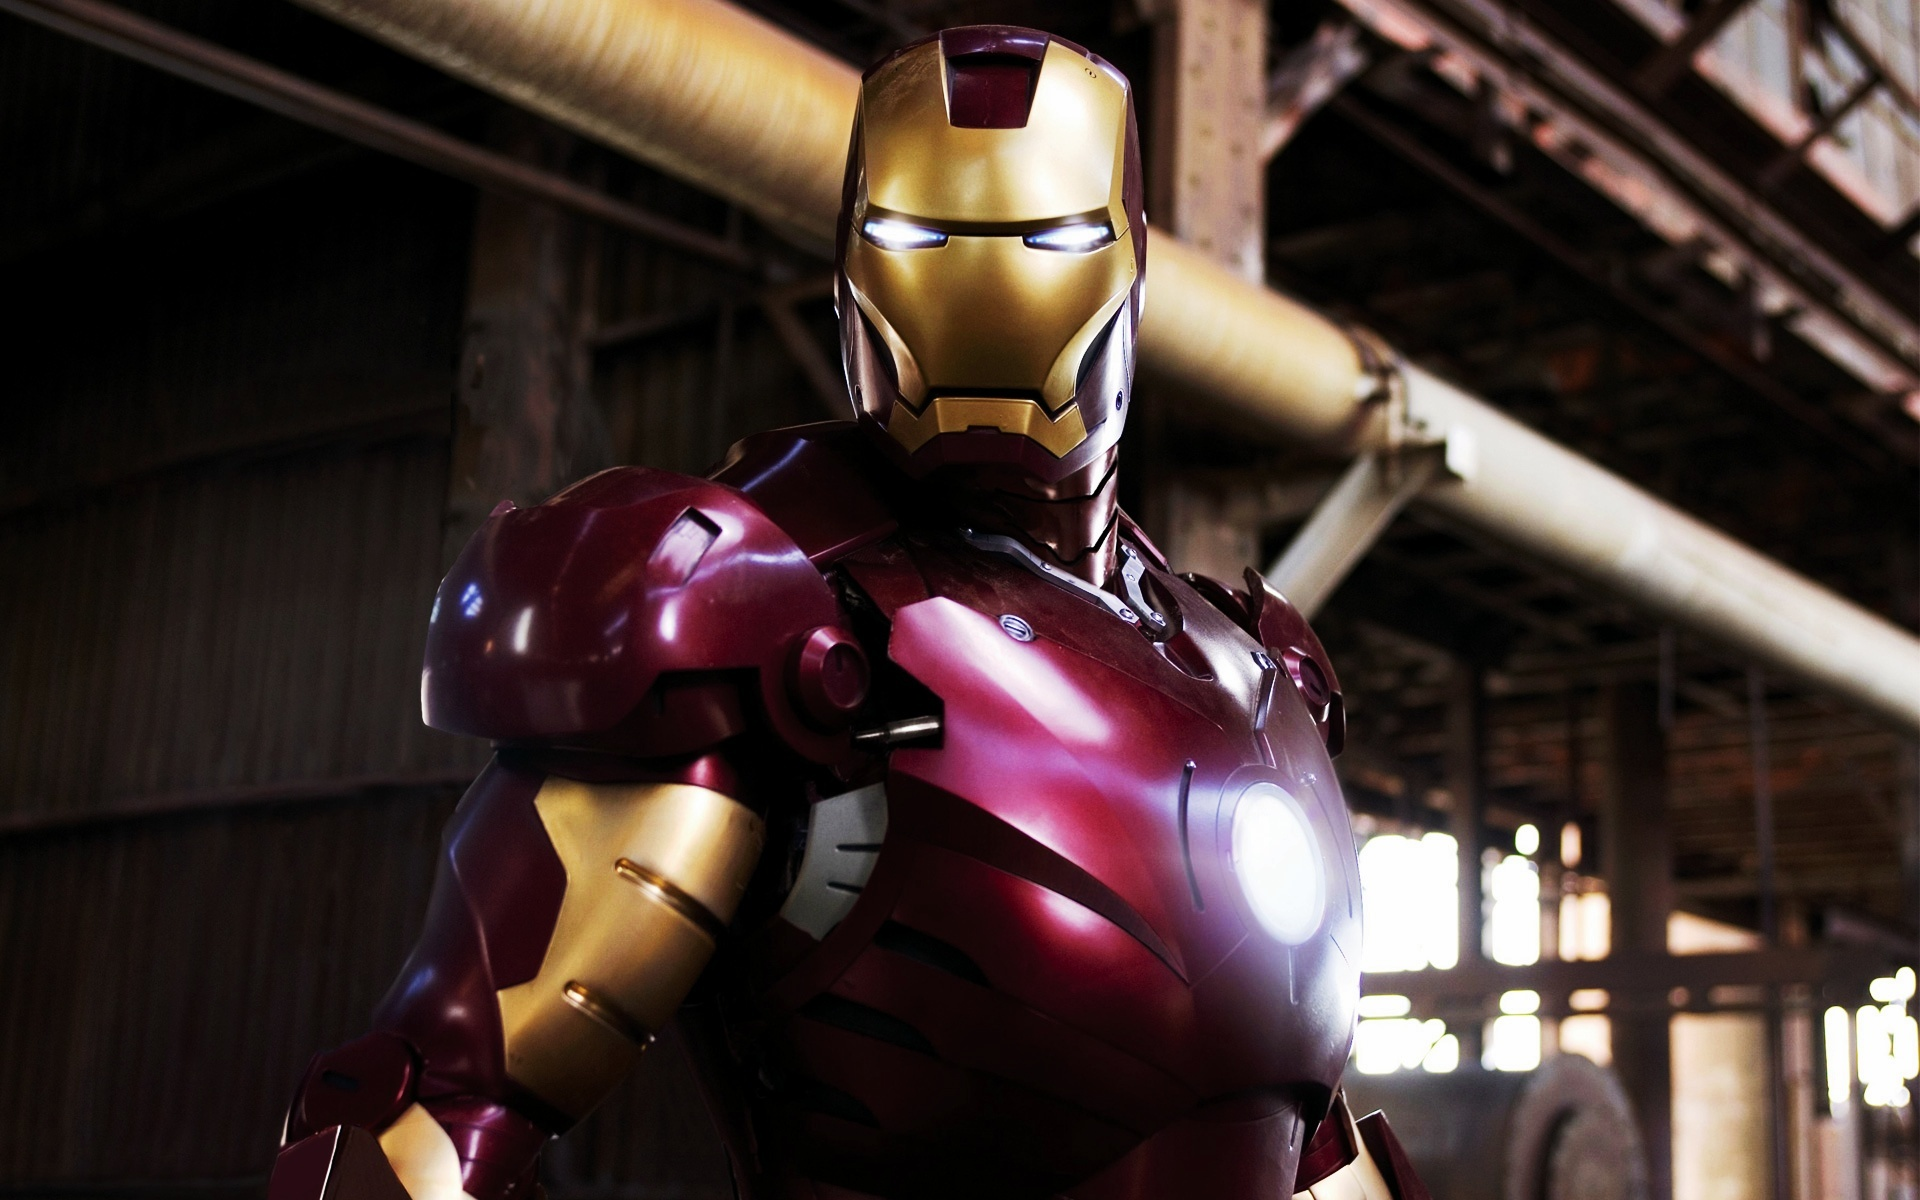 Download Wallpaper Iron Man Movie Still 1